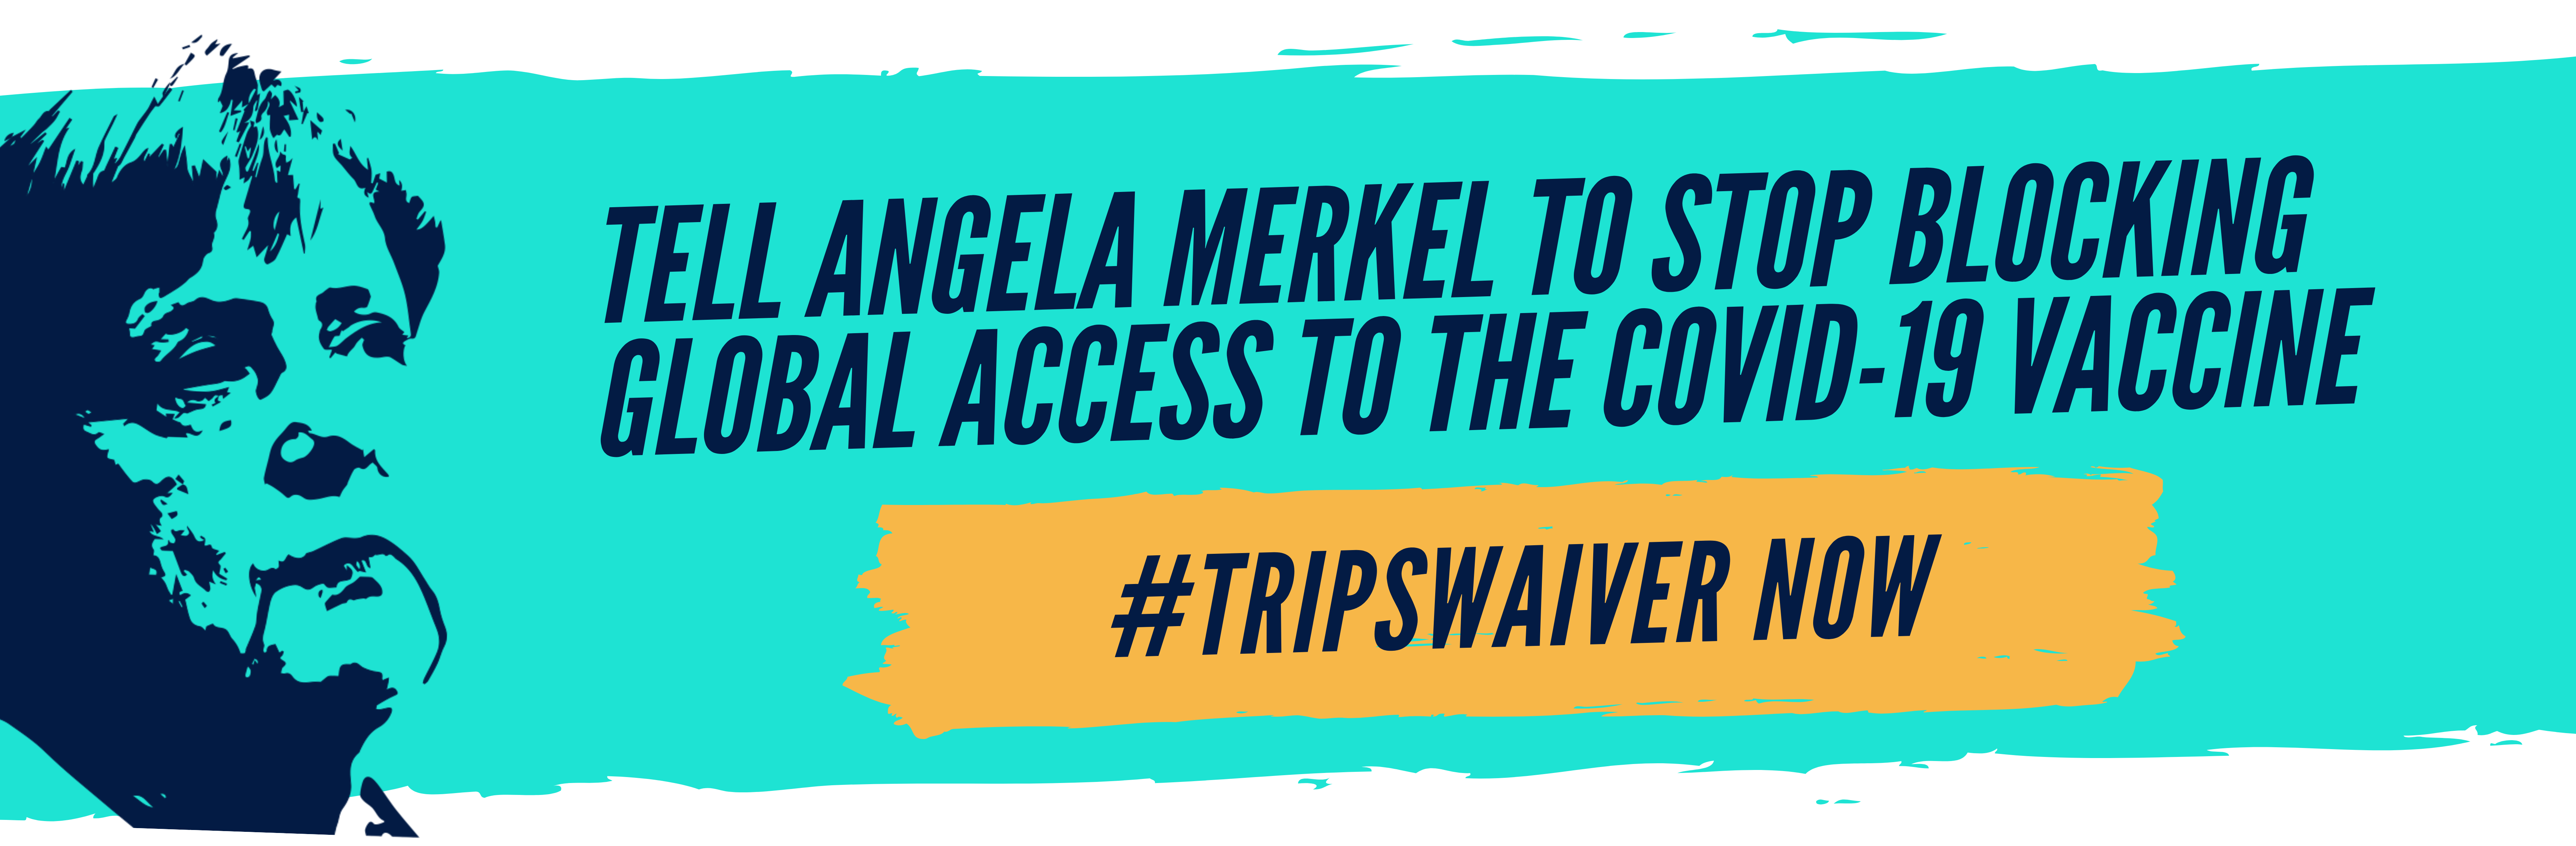 TRIPS Waiver Now!